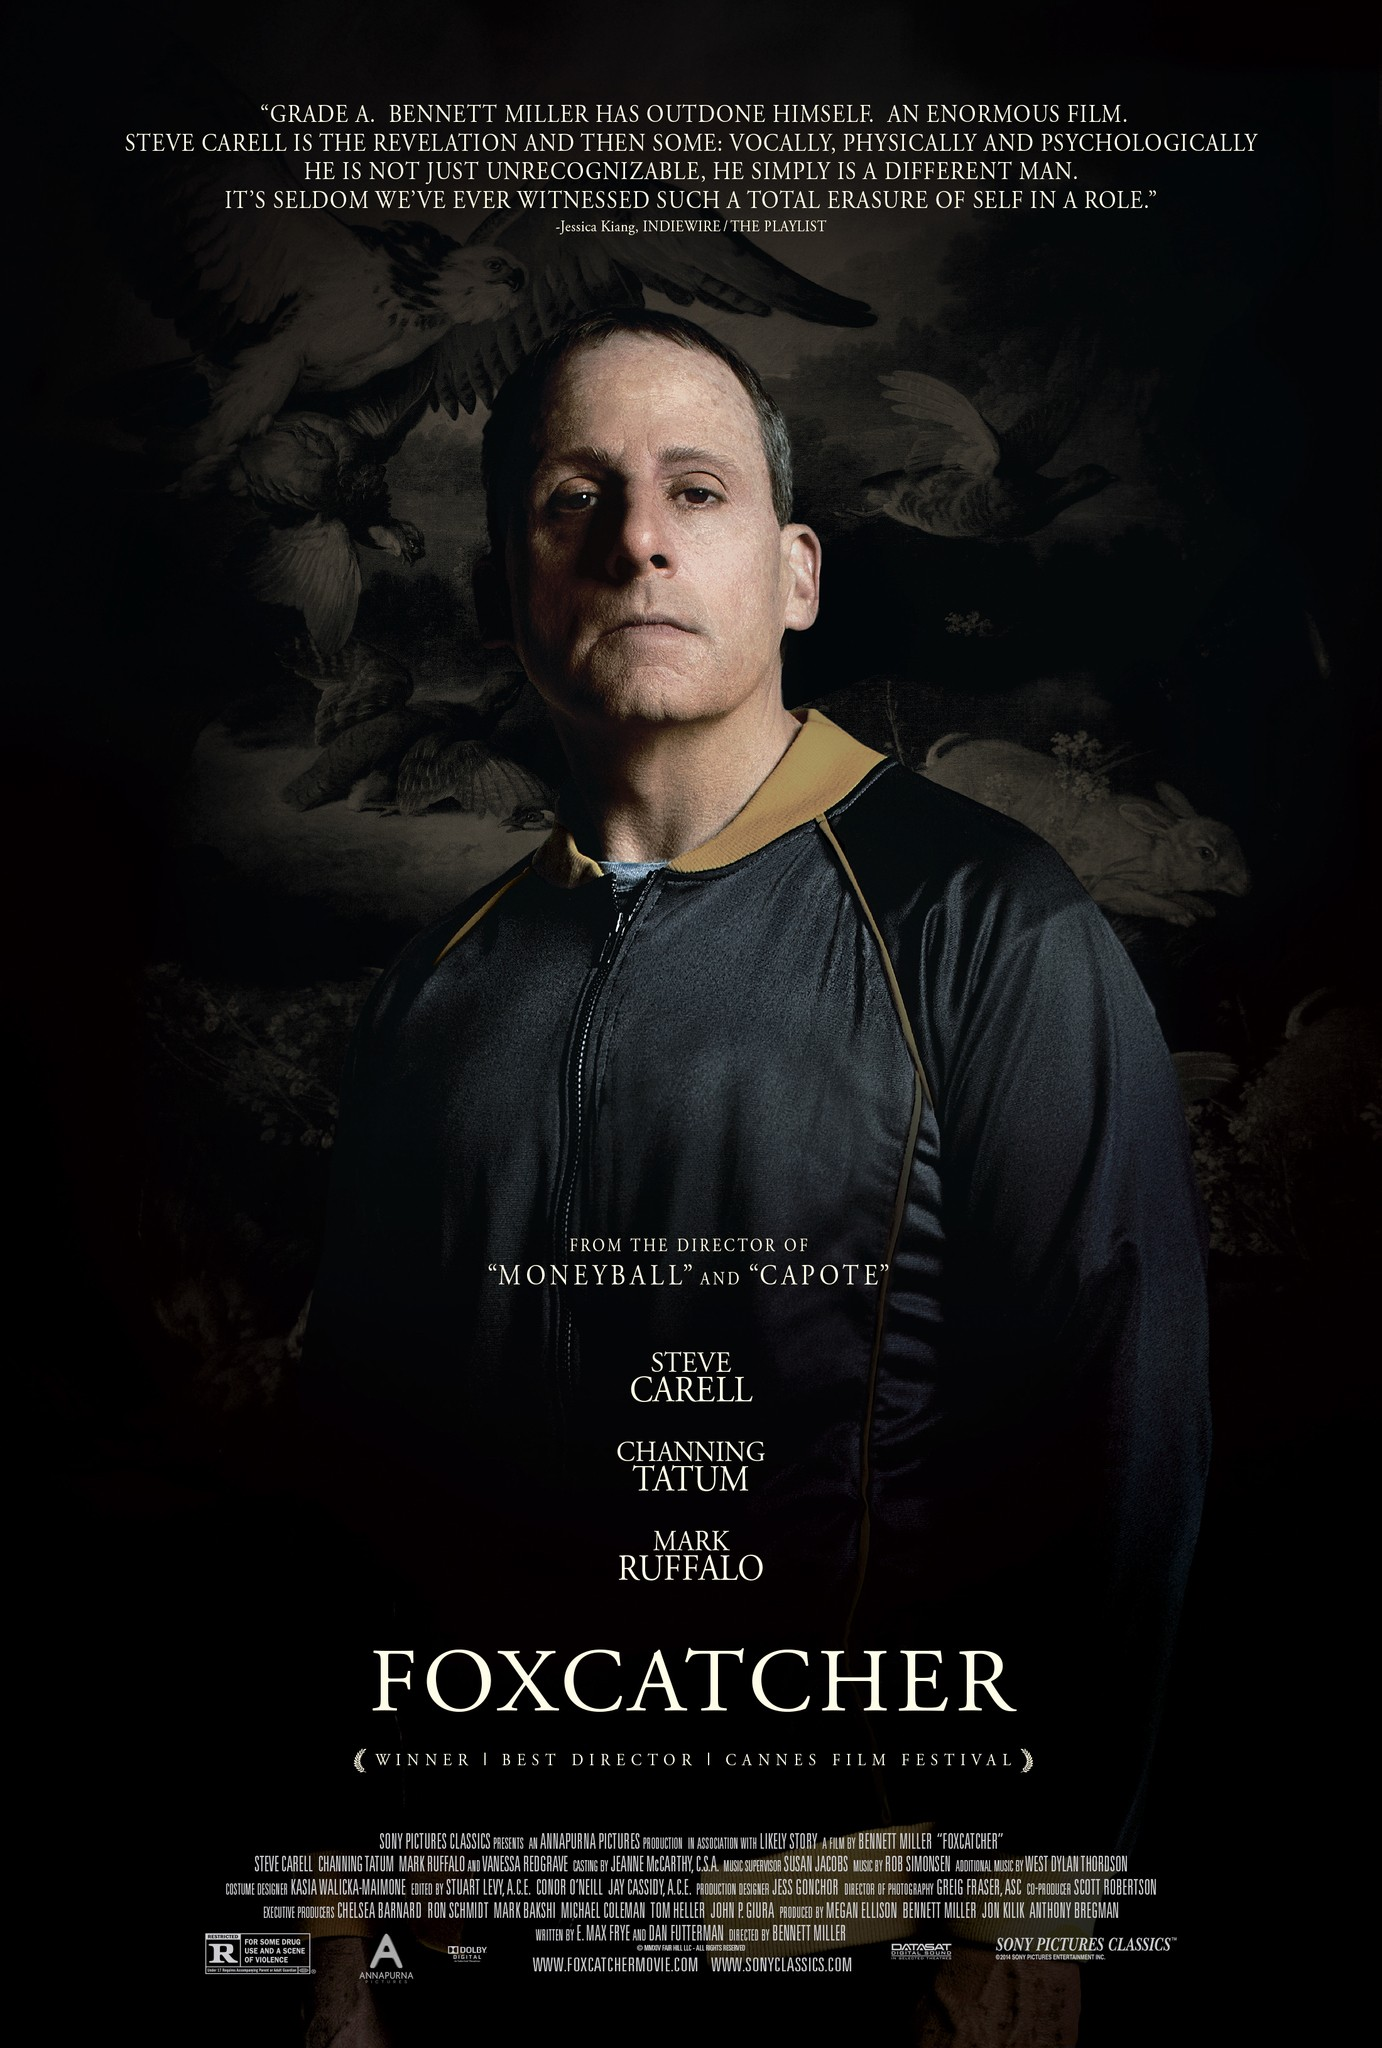 Foxcatcher-Official Poster Banner PROMO XXLG-28AGOSTO2014